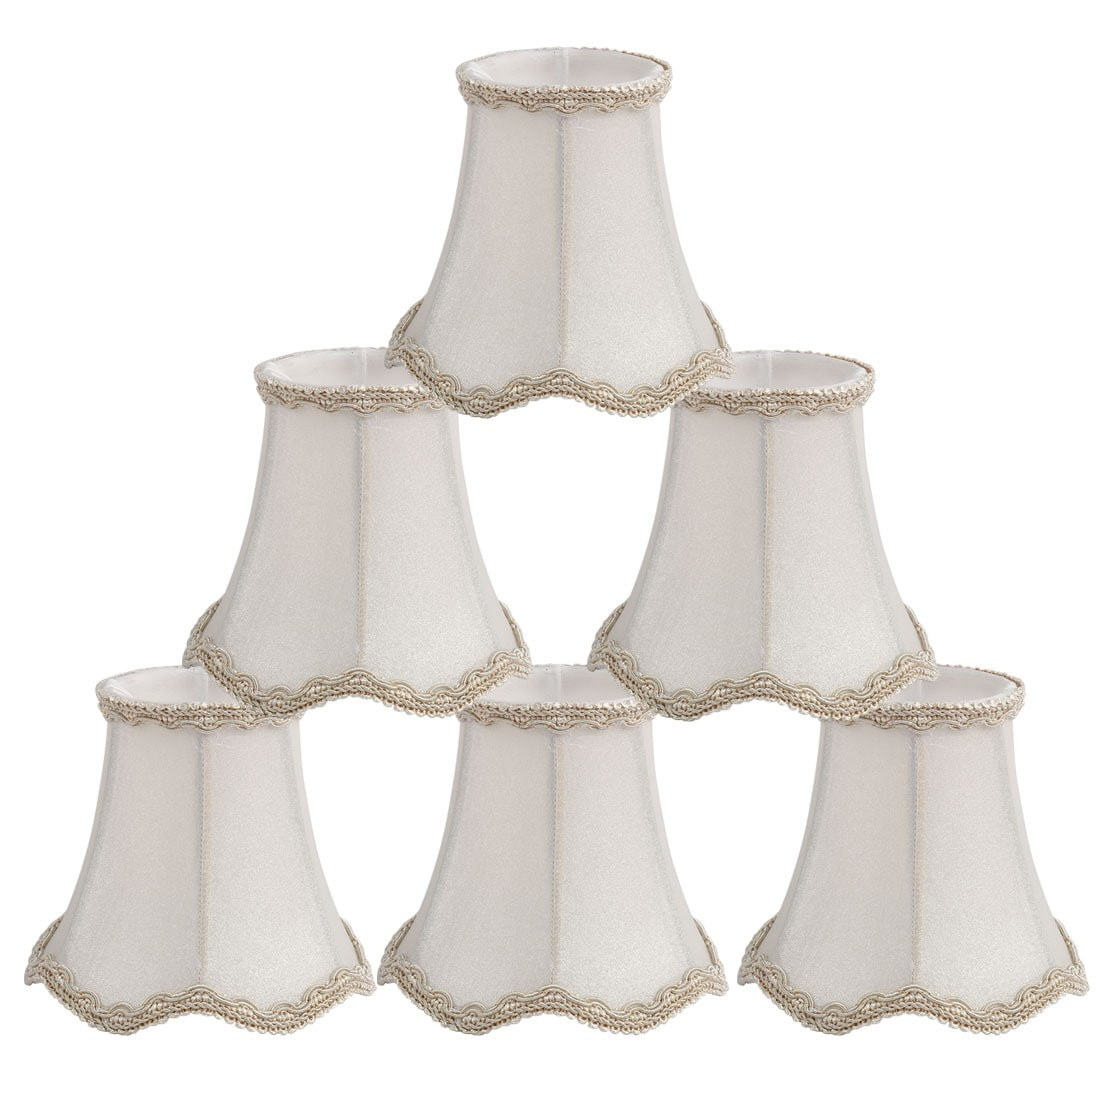 Shop Black Friday Deals On Wall Ceiling Clip On Lamp Shades Light Cover White 3x5 3x4 7inch Set Of 6 Overstock 22485290